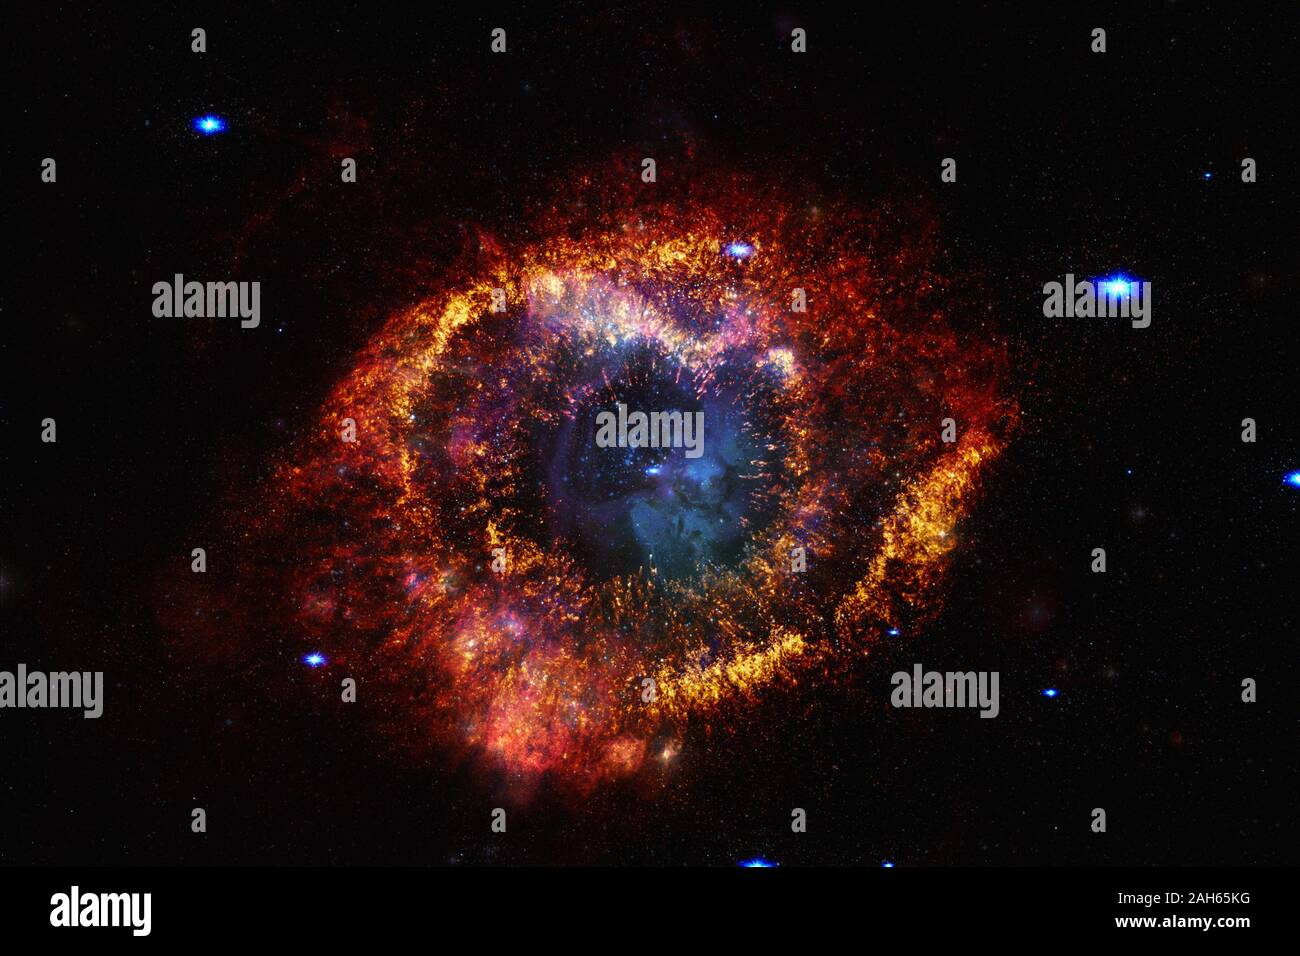 galaxy in outer space beautiful science fiction wallpaper elements of this image furnished by nasa 2AH65KG